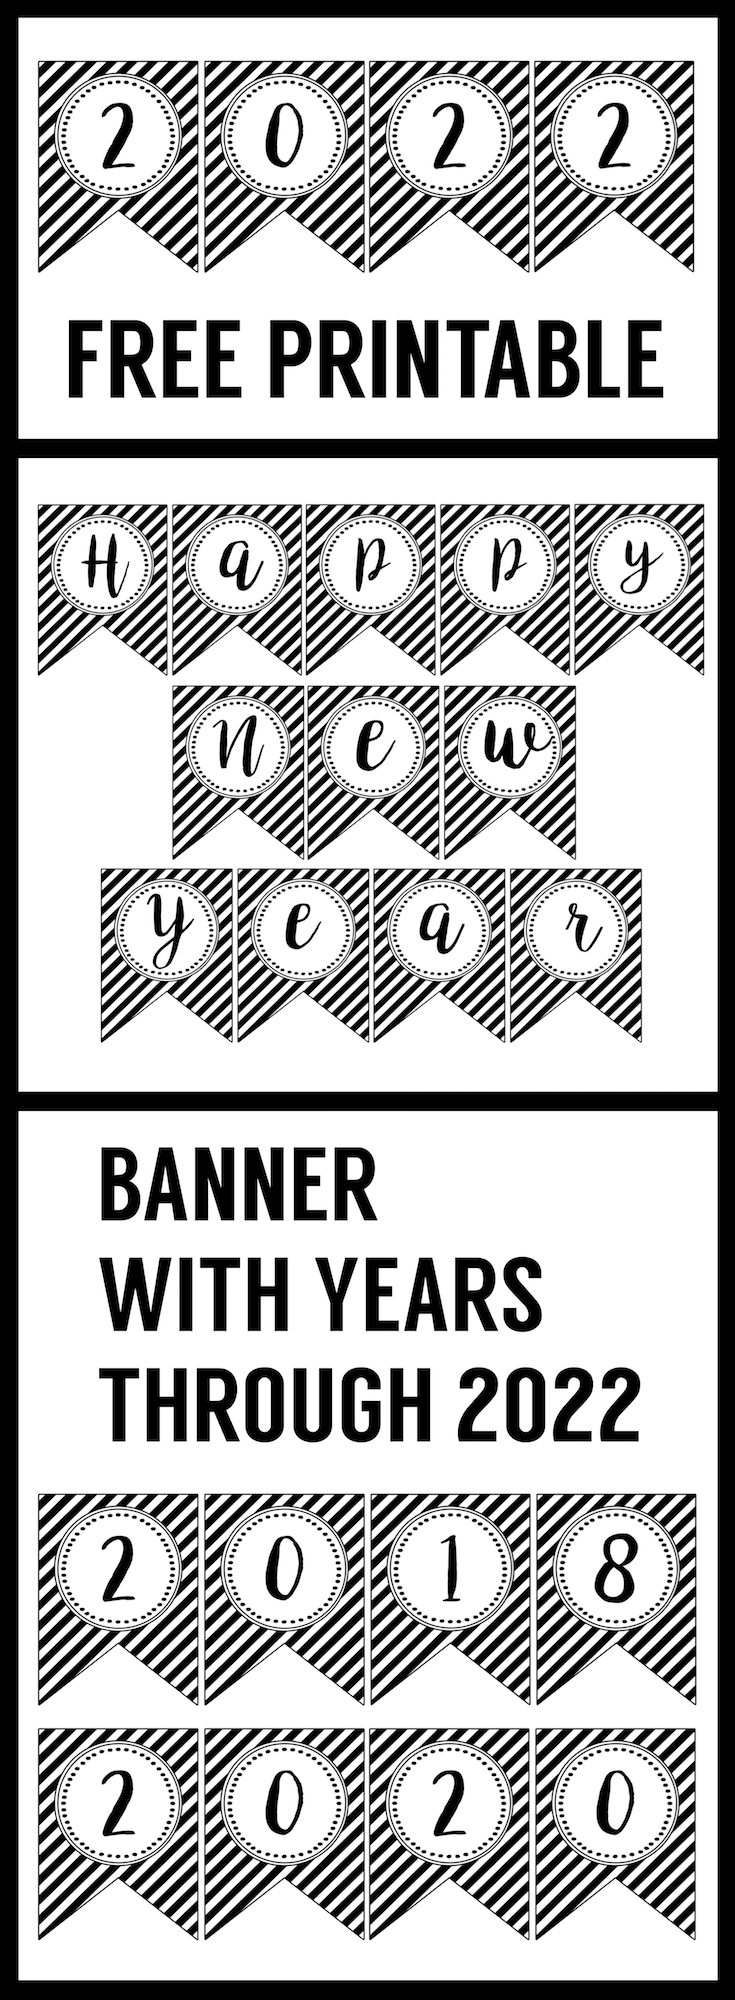 Happy New Year Banner Printable. This free printable happy New Year banner is an easy DIY for your New Year's party decor. Just print, cut and hang!